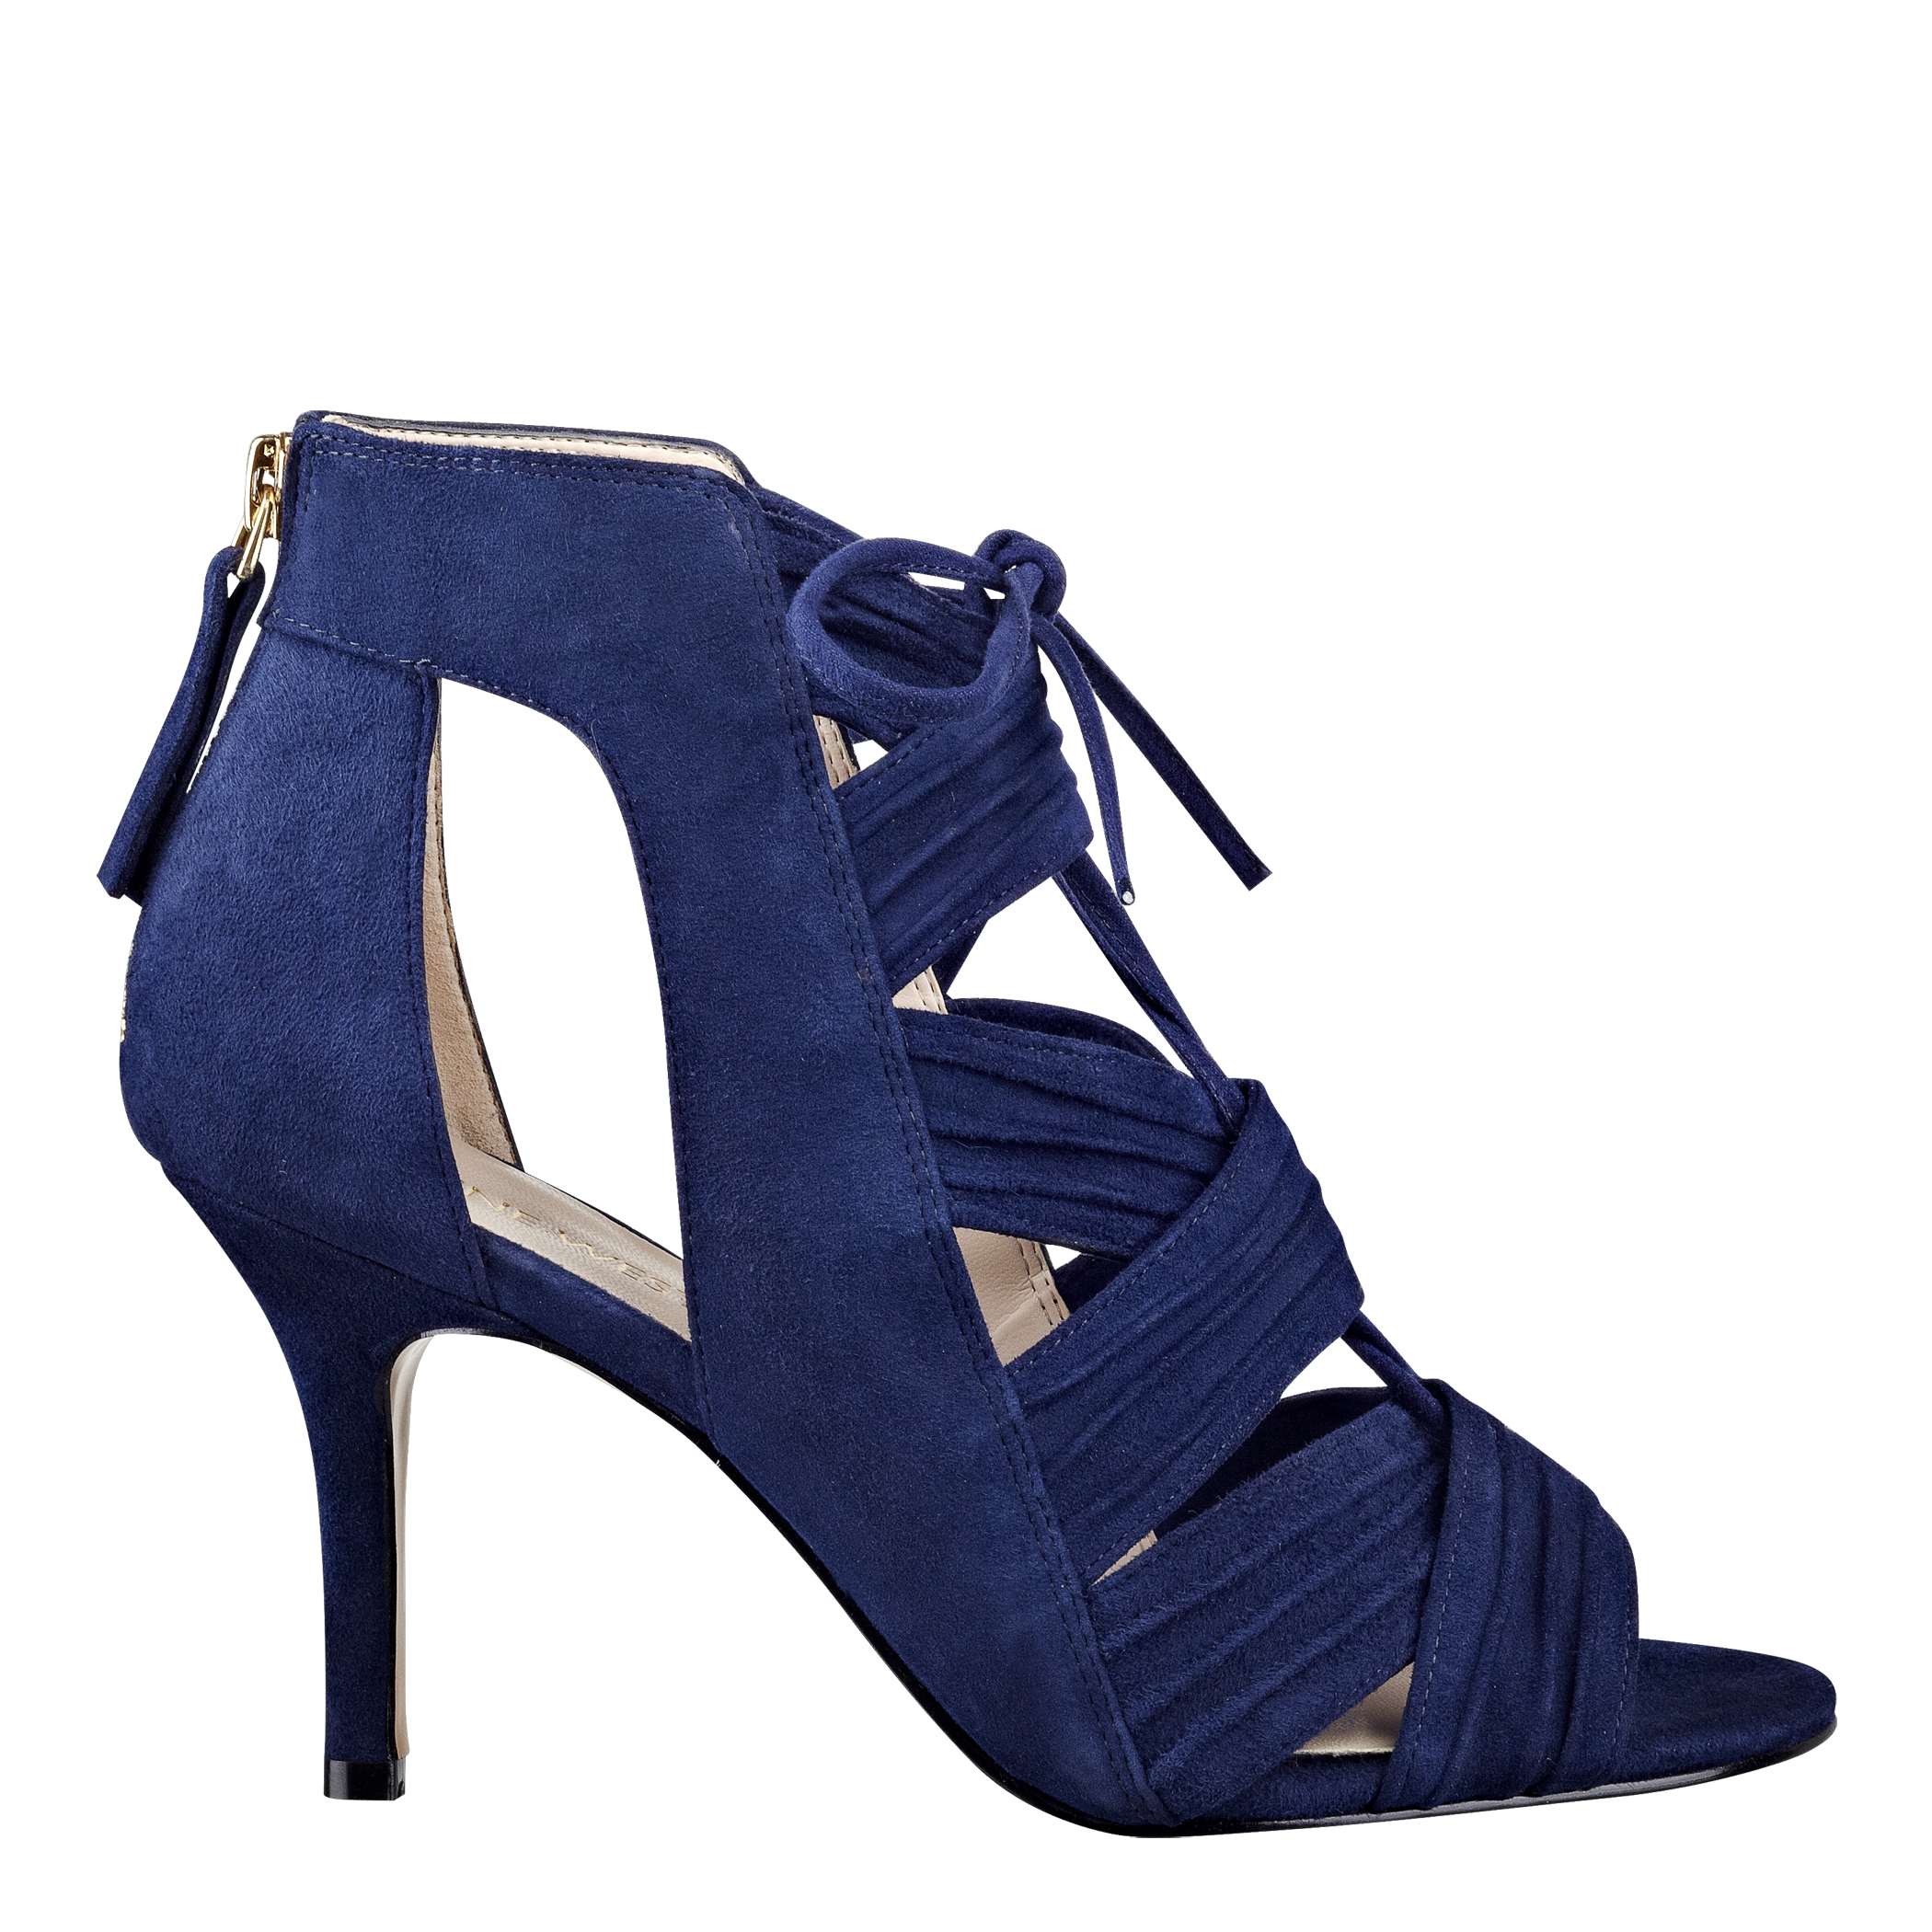 Latest Fashion of Stiletto & Heels Collection for women by Nine West (14)